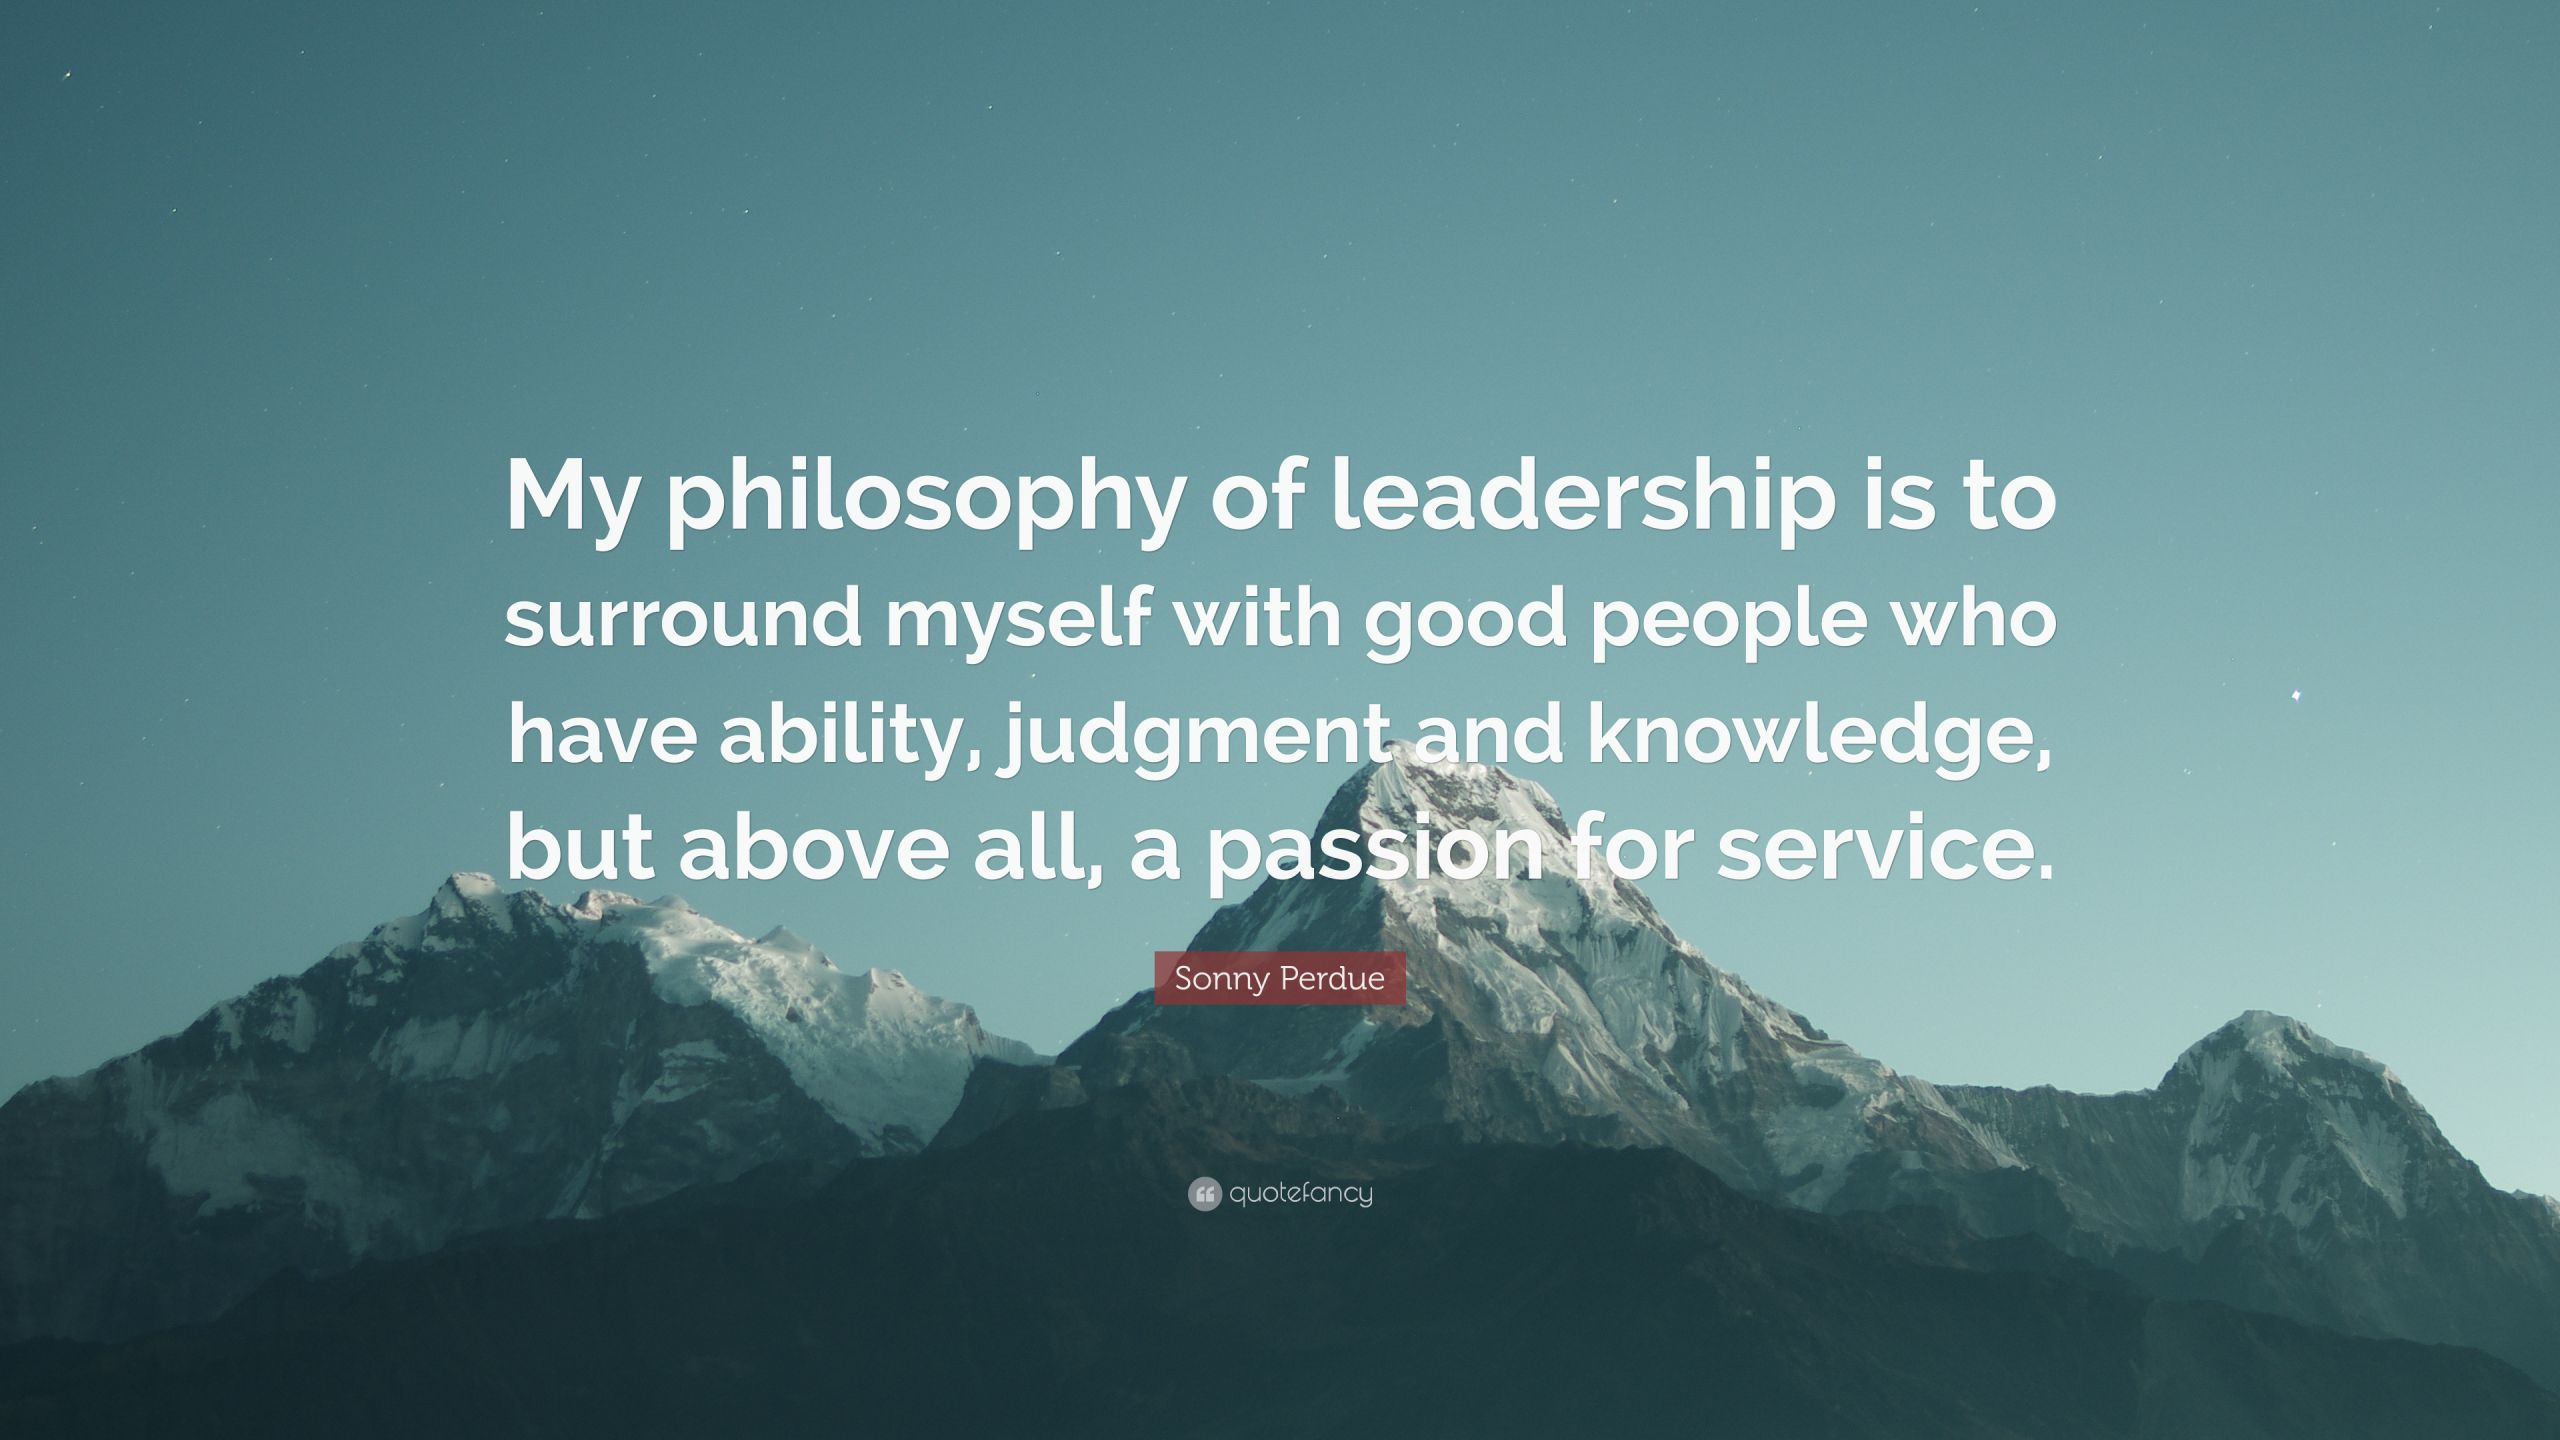 Leadership Philosophy Quotes  Leadership Philosophy Quotes